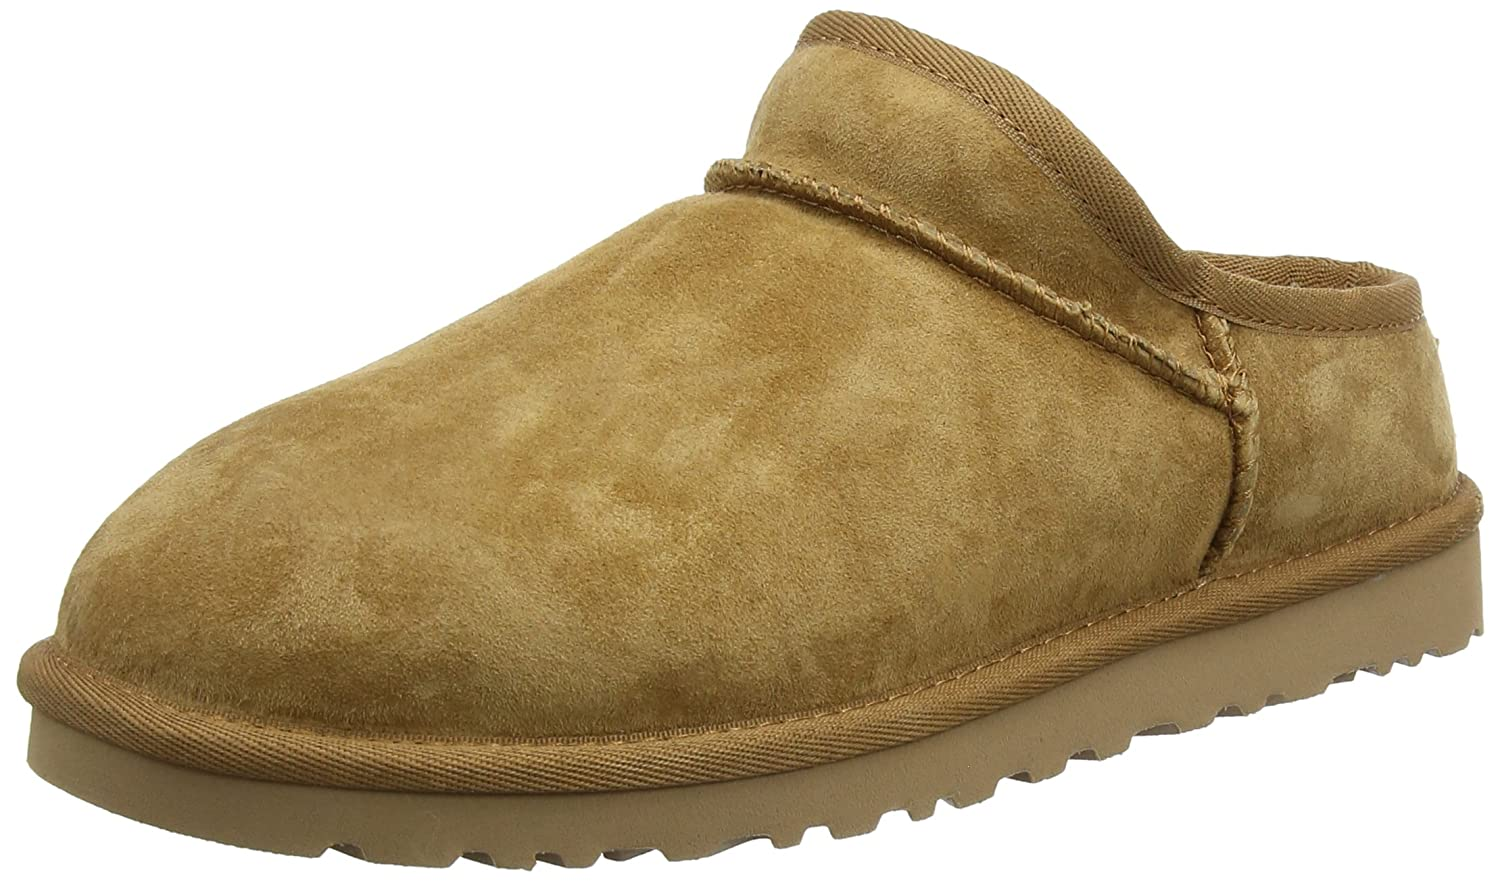 cfea5c1a145 Ugg Australia Classic Slipper, Women's Boots, brown (Chestnut), 6.5 UK (39  EU)